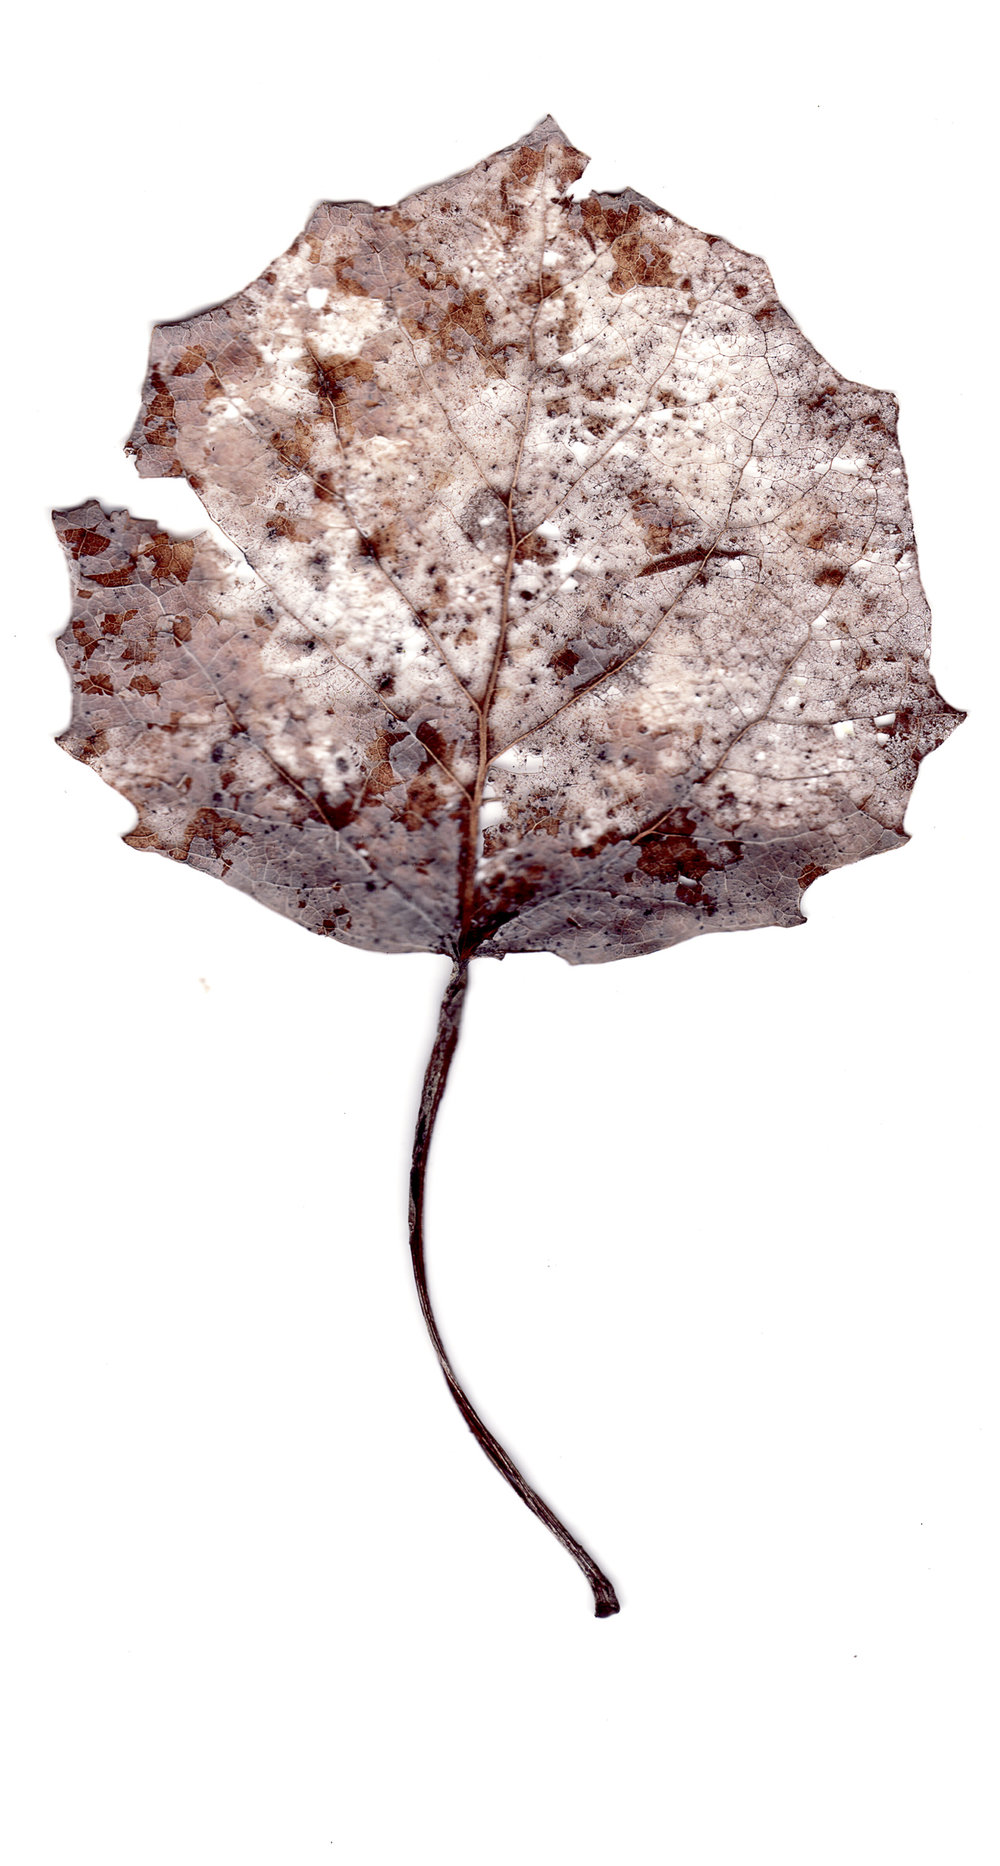 Collected Poems, Aspen Leaves0013  , Ink Jet print on Washi paper, 13x27 inches, 2007, ed. 3